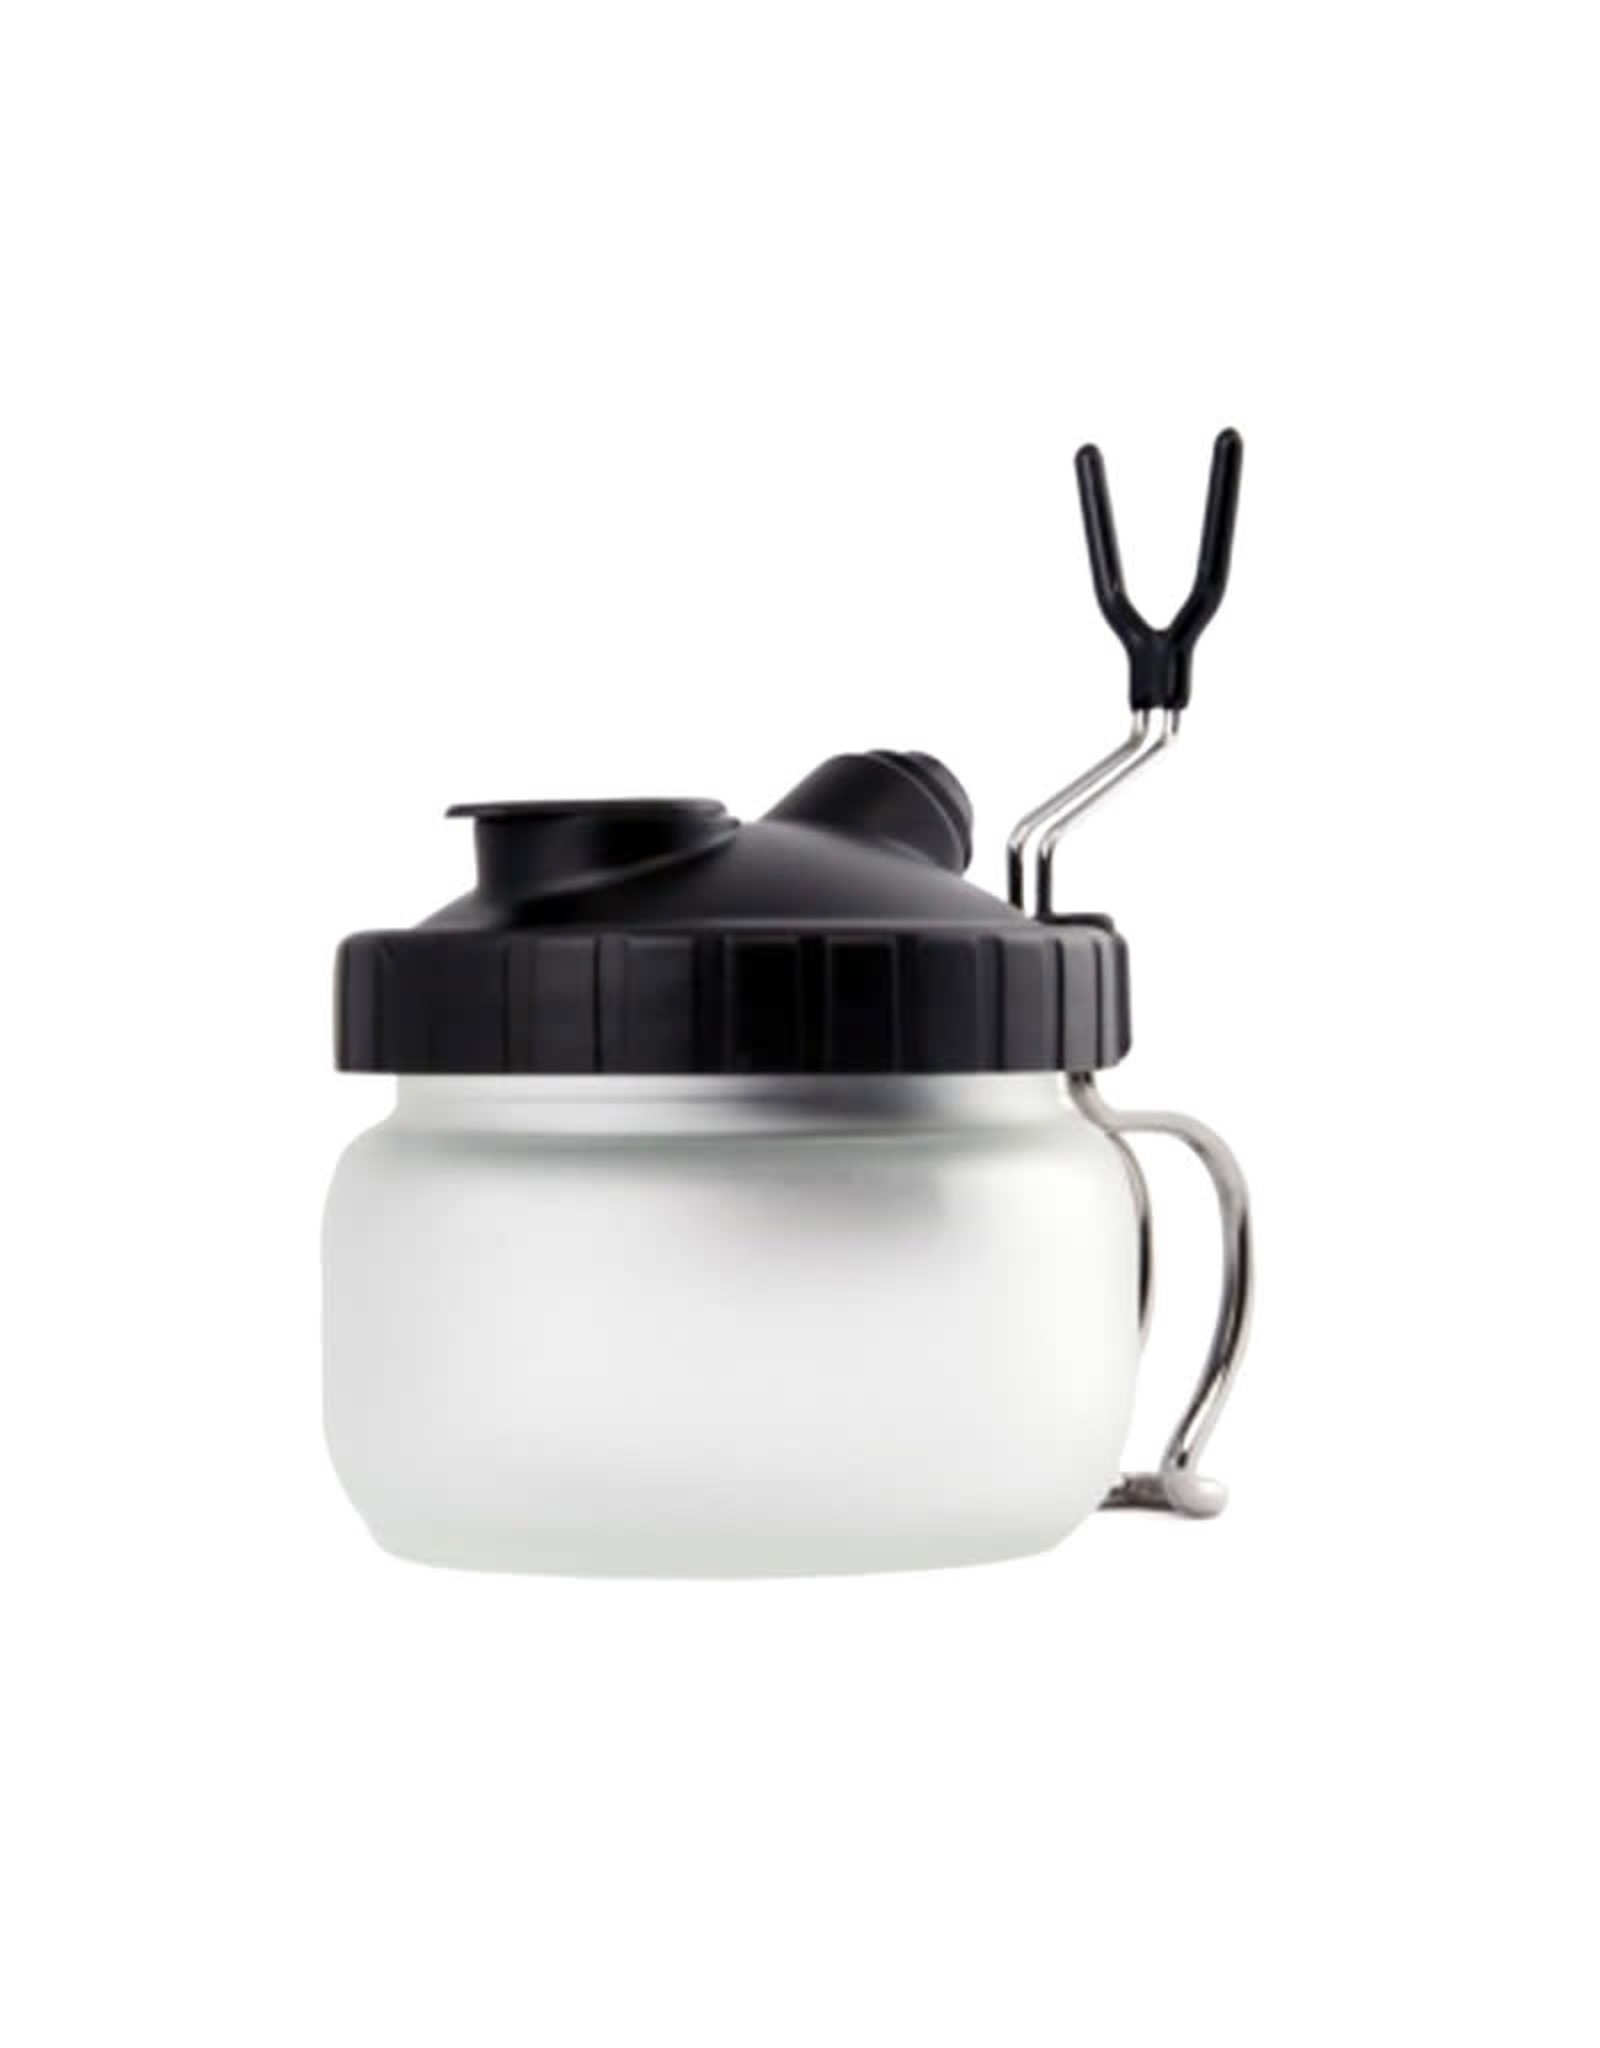 Sparmax Airbrush SCP-700 Cleaning Pot